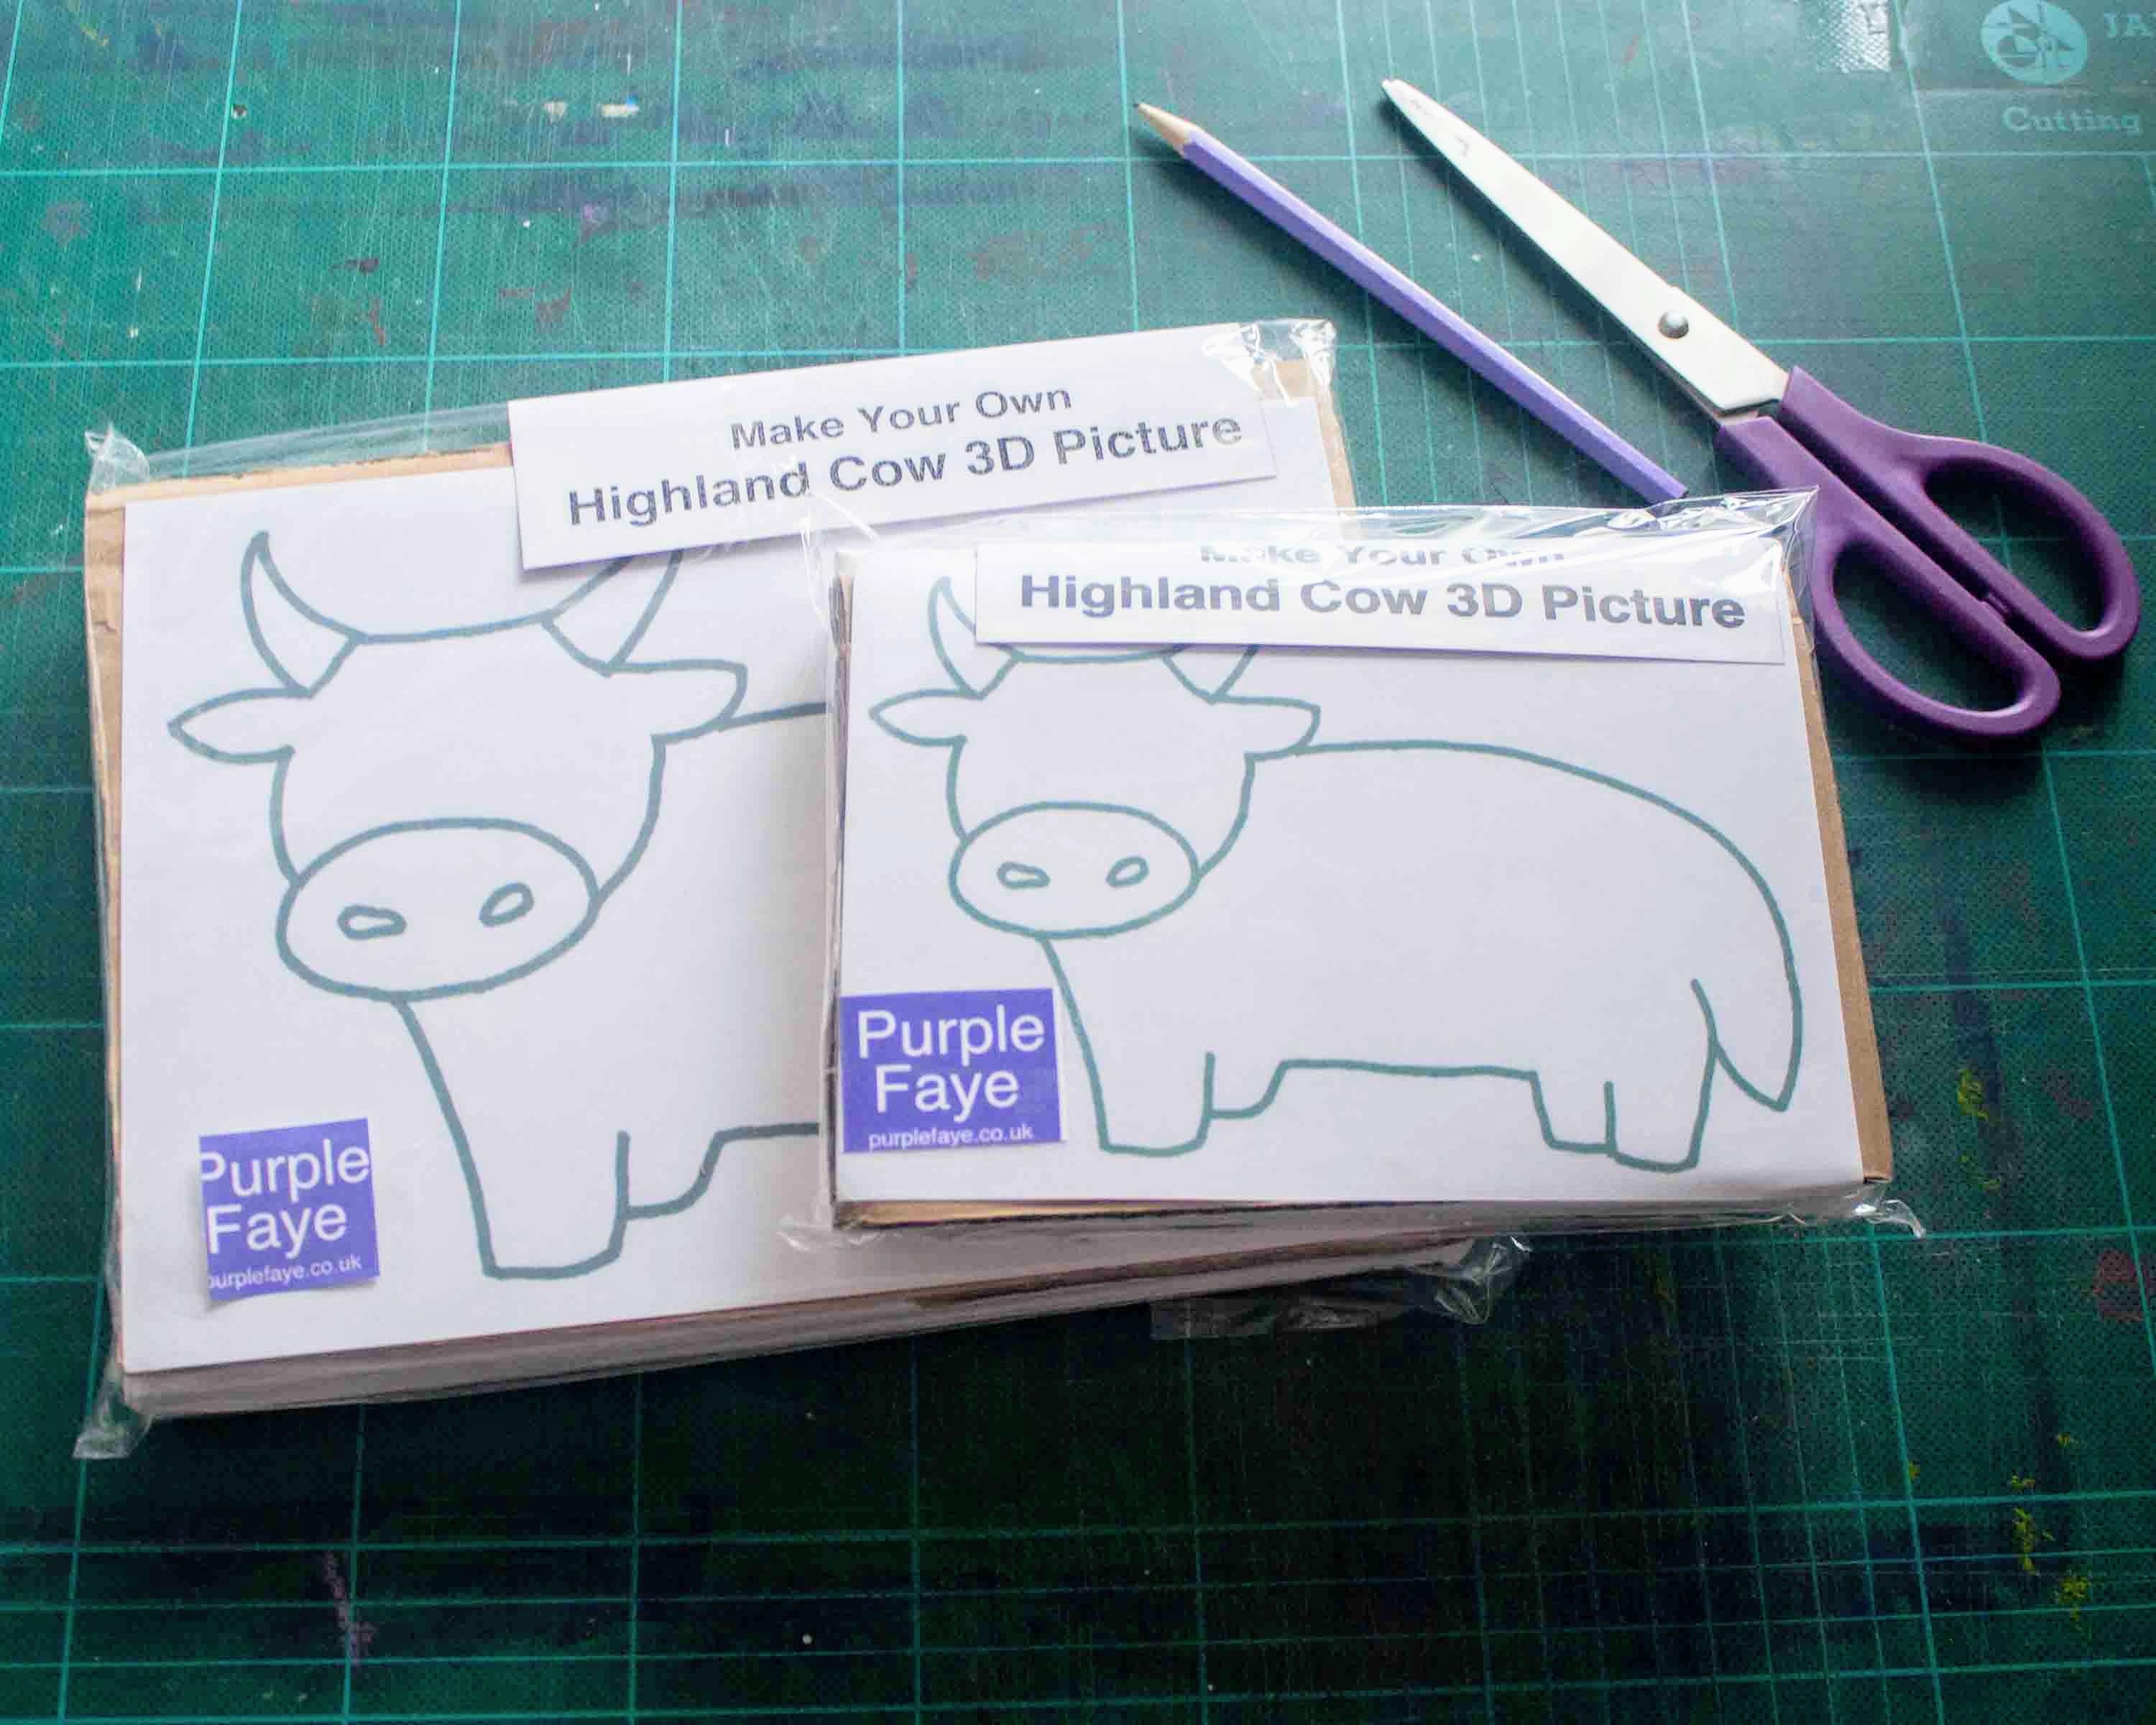 Make Your Own Highland Cow 3D Picture Craft Kit by purple loving Yorkshire, UK, artist Purple Faye